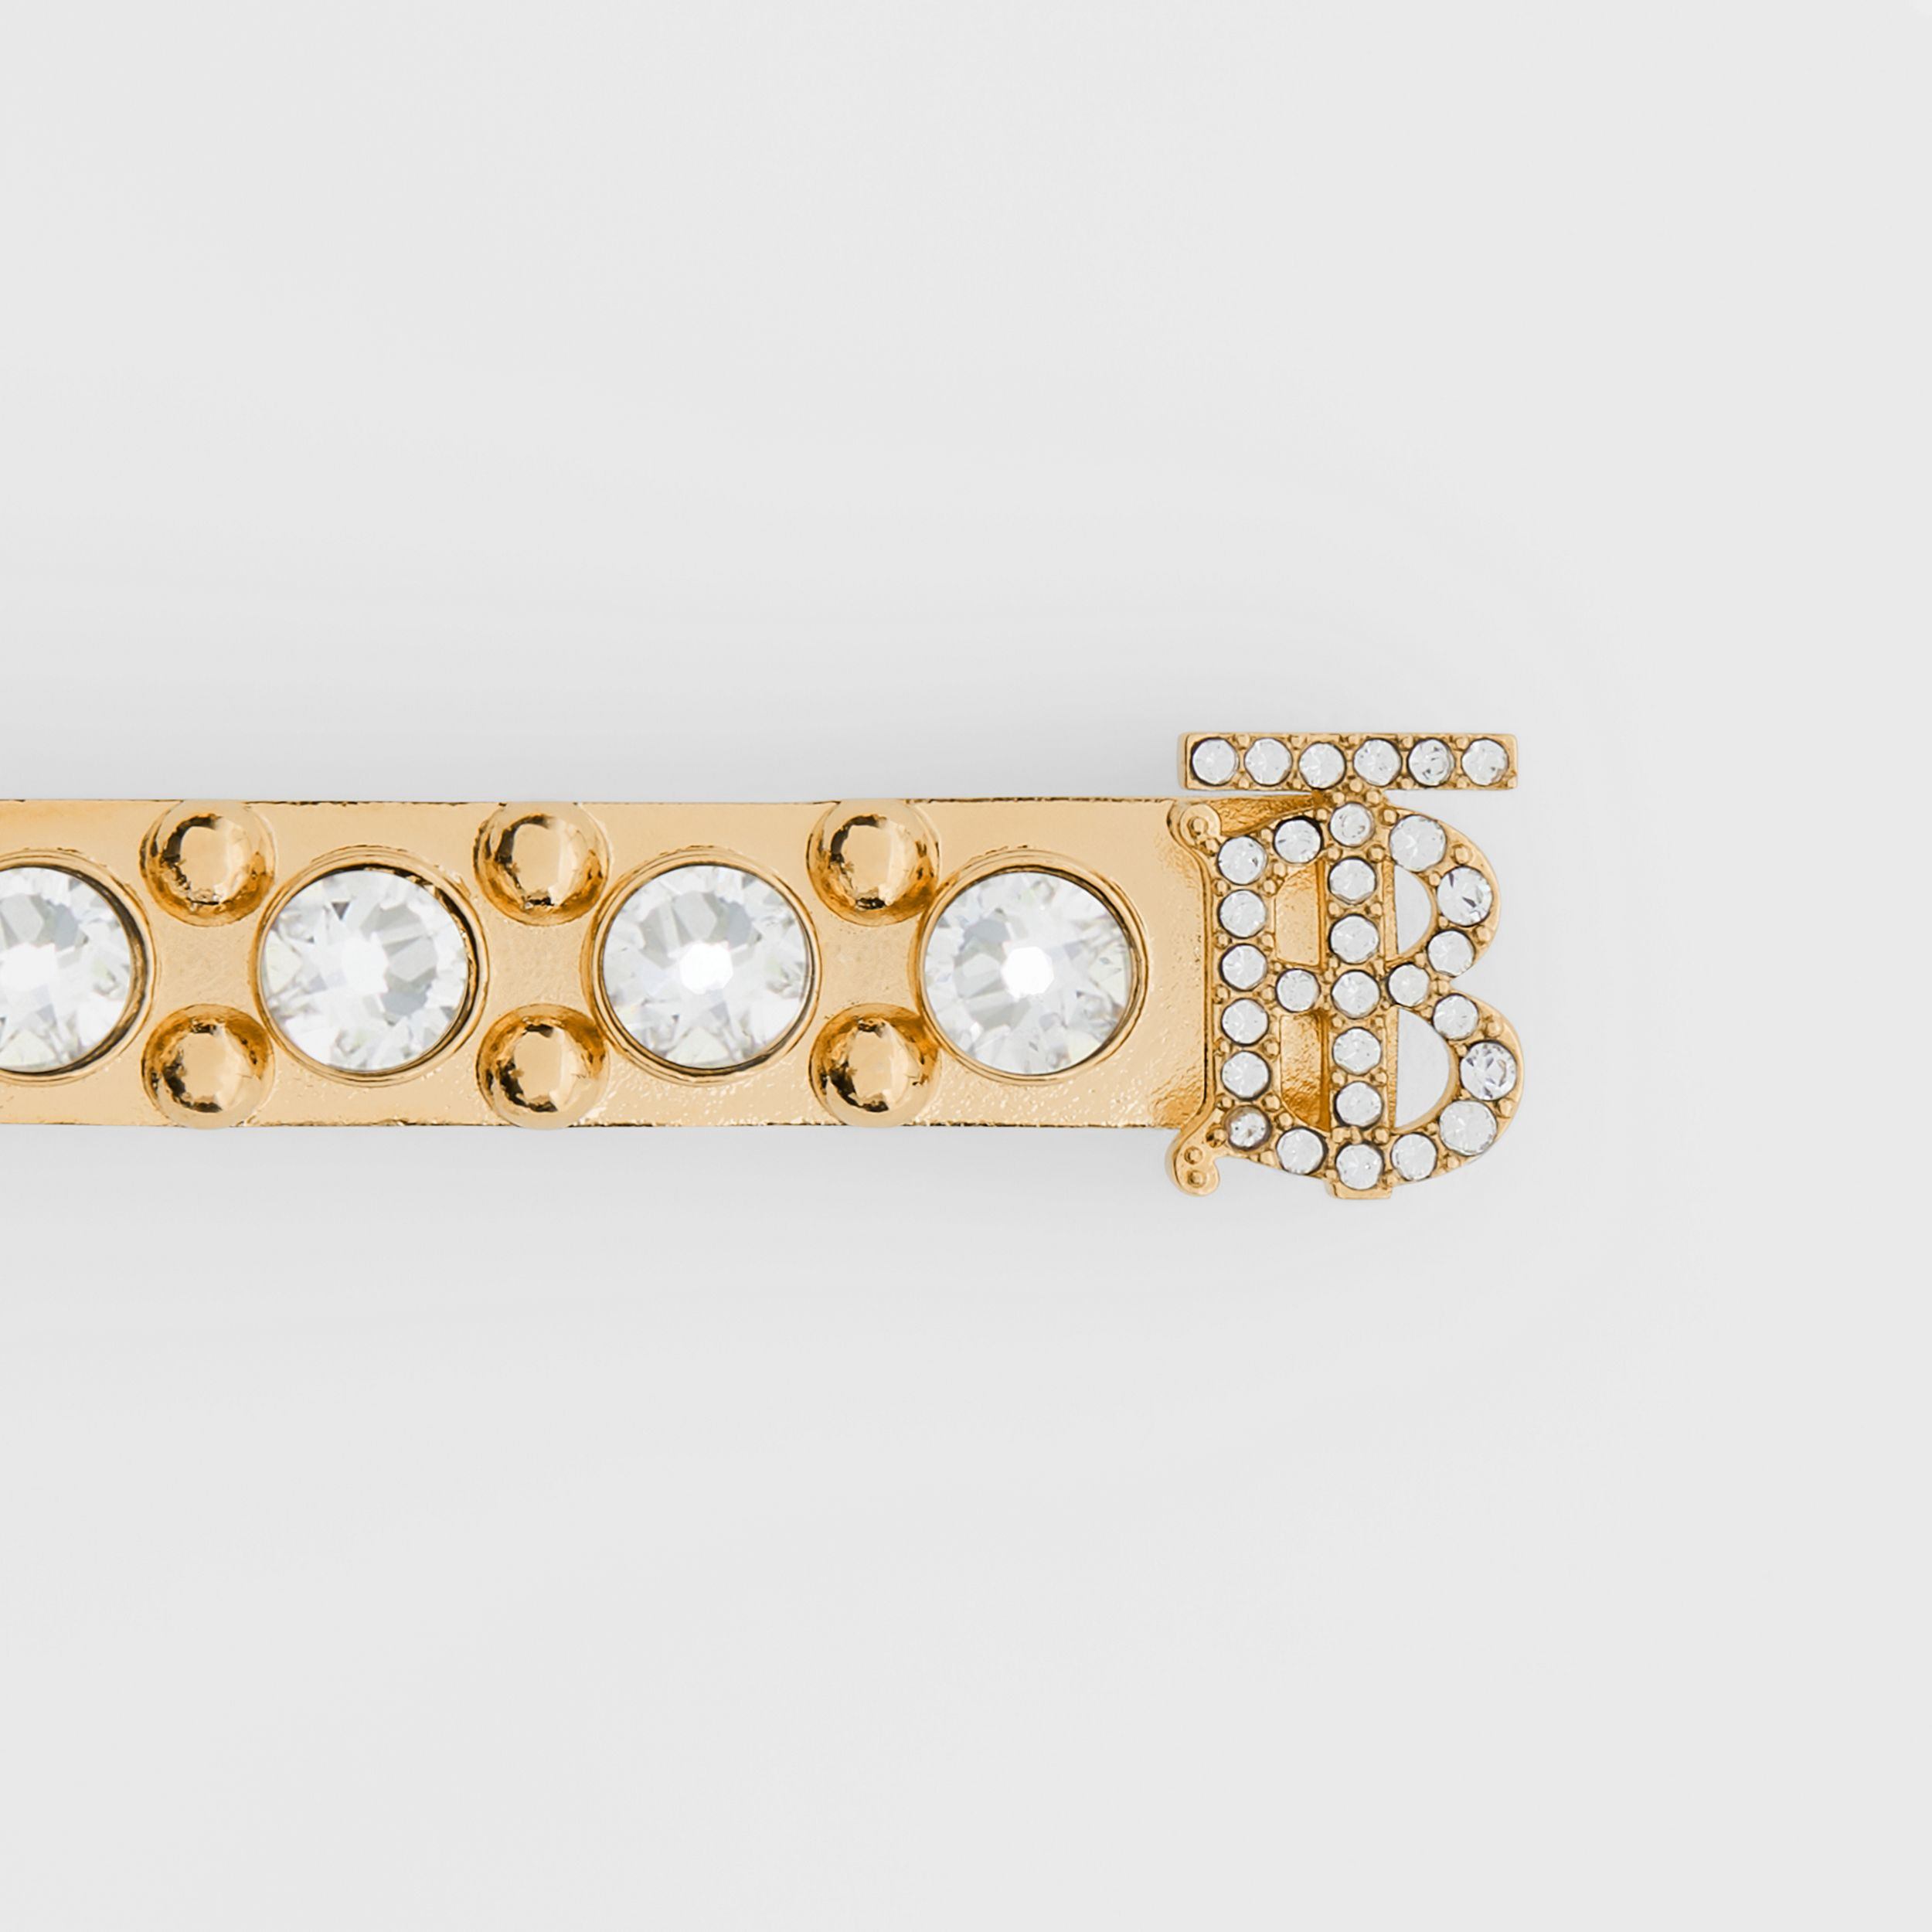 Crystal Monogram Motif Gold-plated Barrette in Light - Women | Burberry - 3